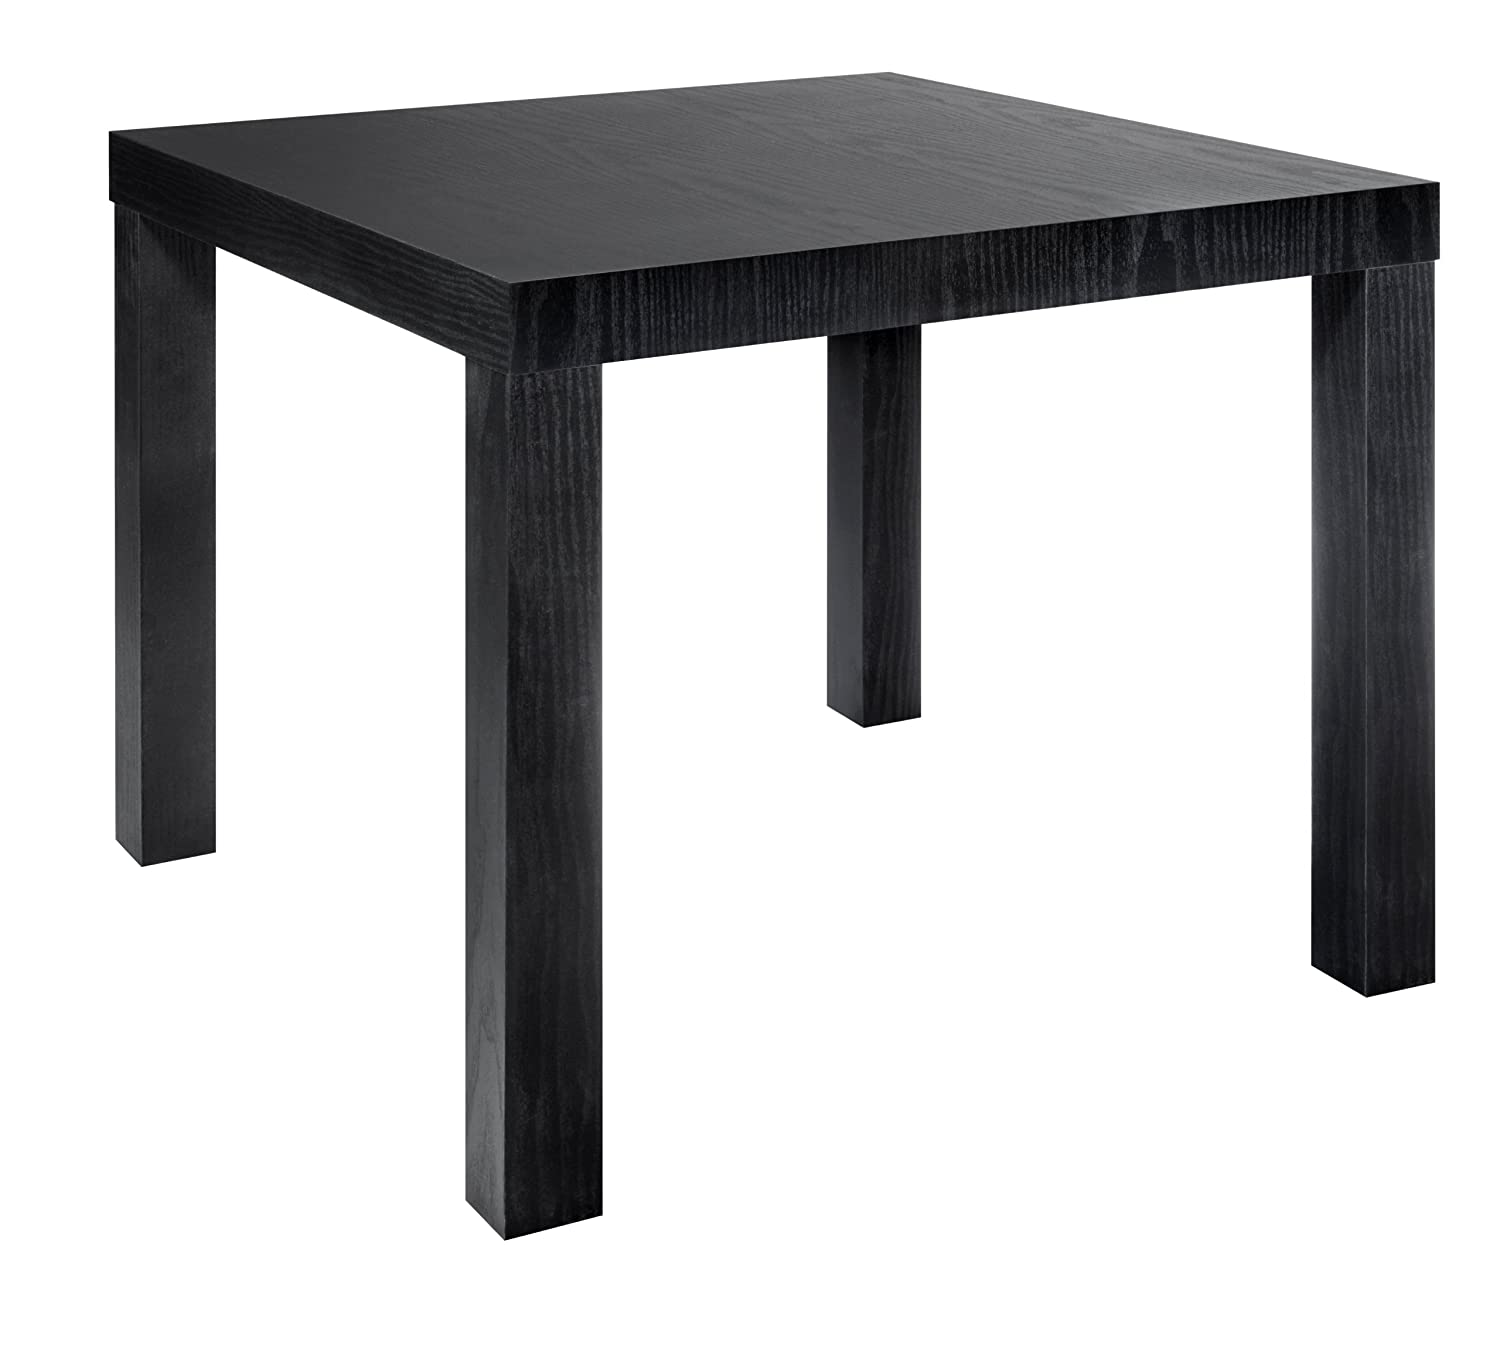 Modern style black wood grain end table living room furniture coffee